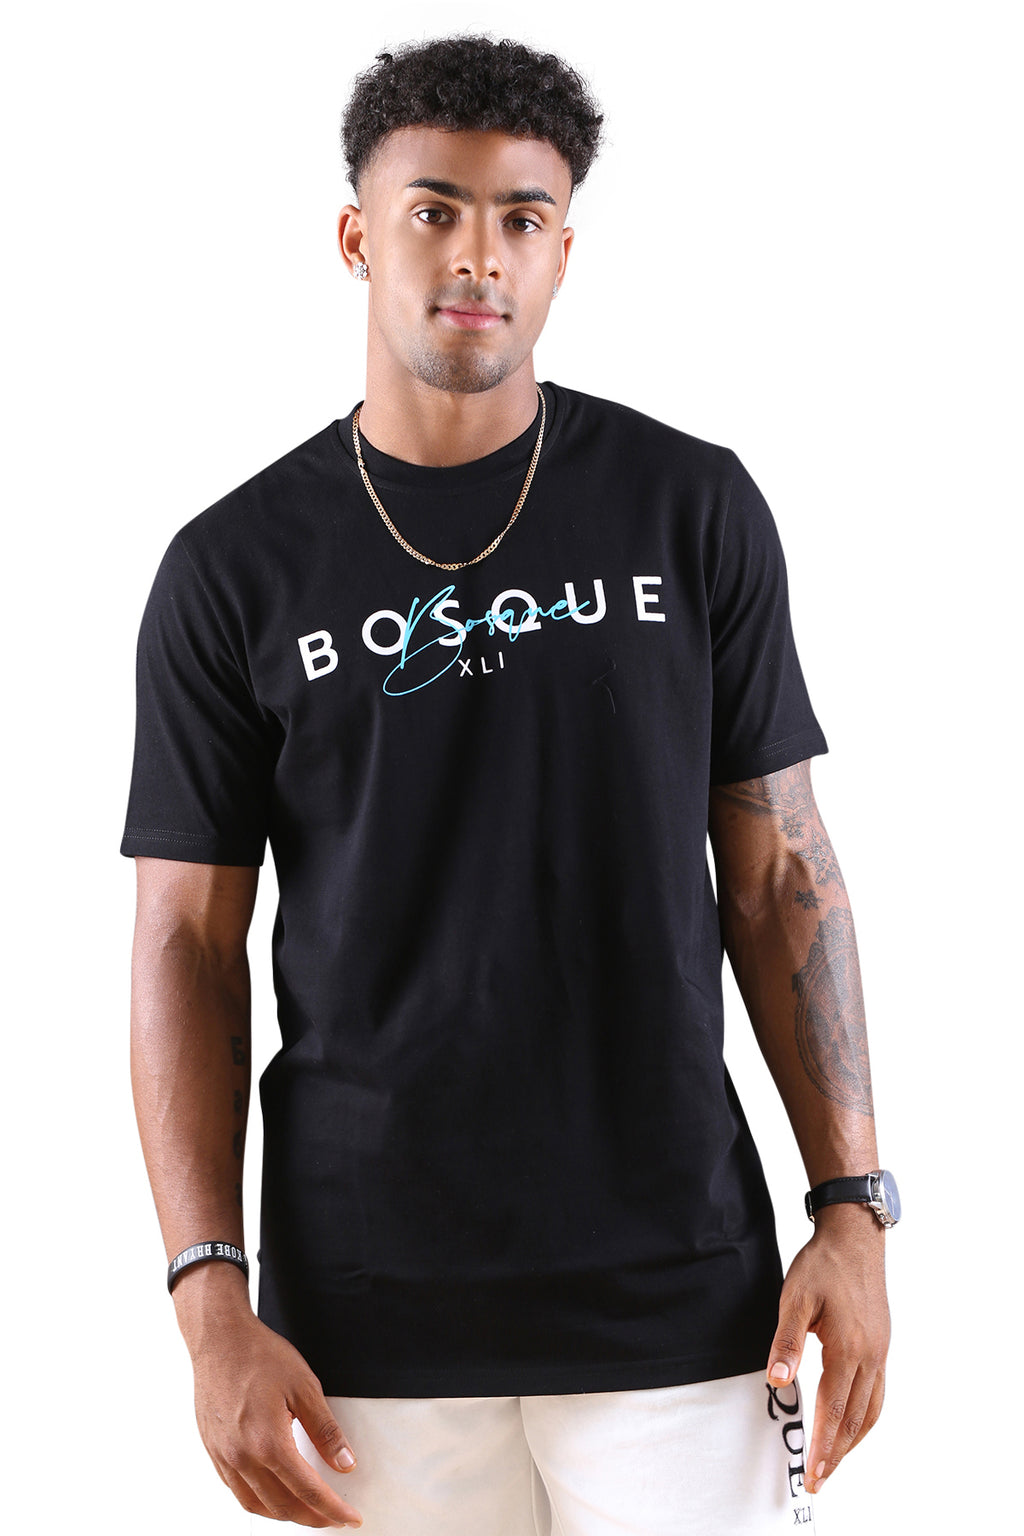 Bosque Suave Tee Black/Sky